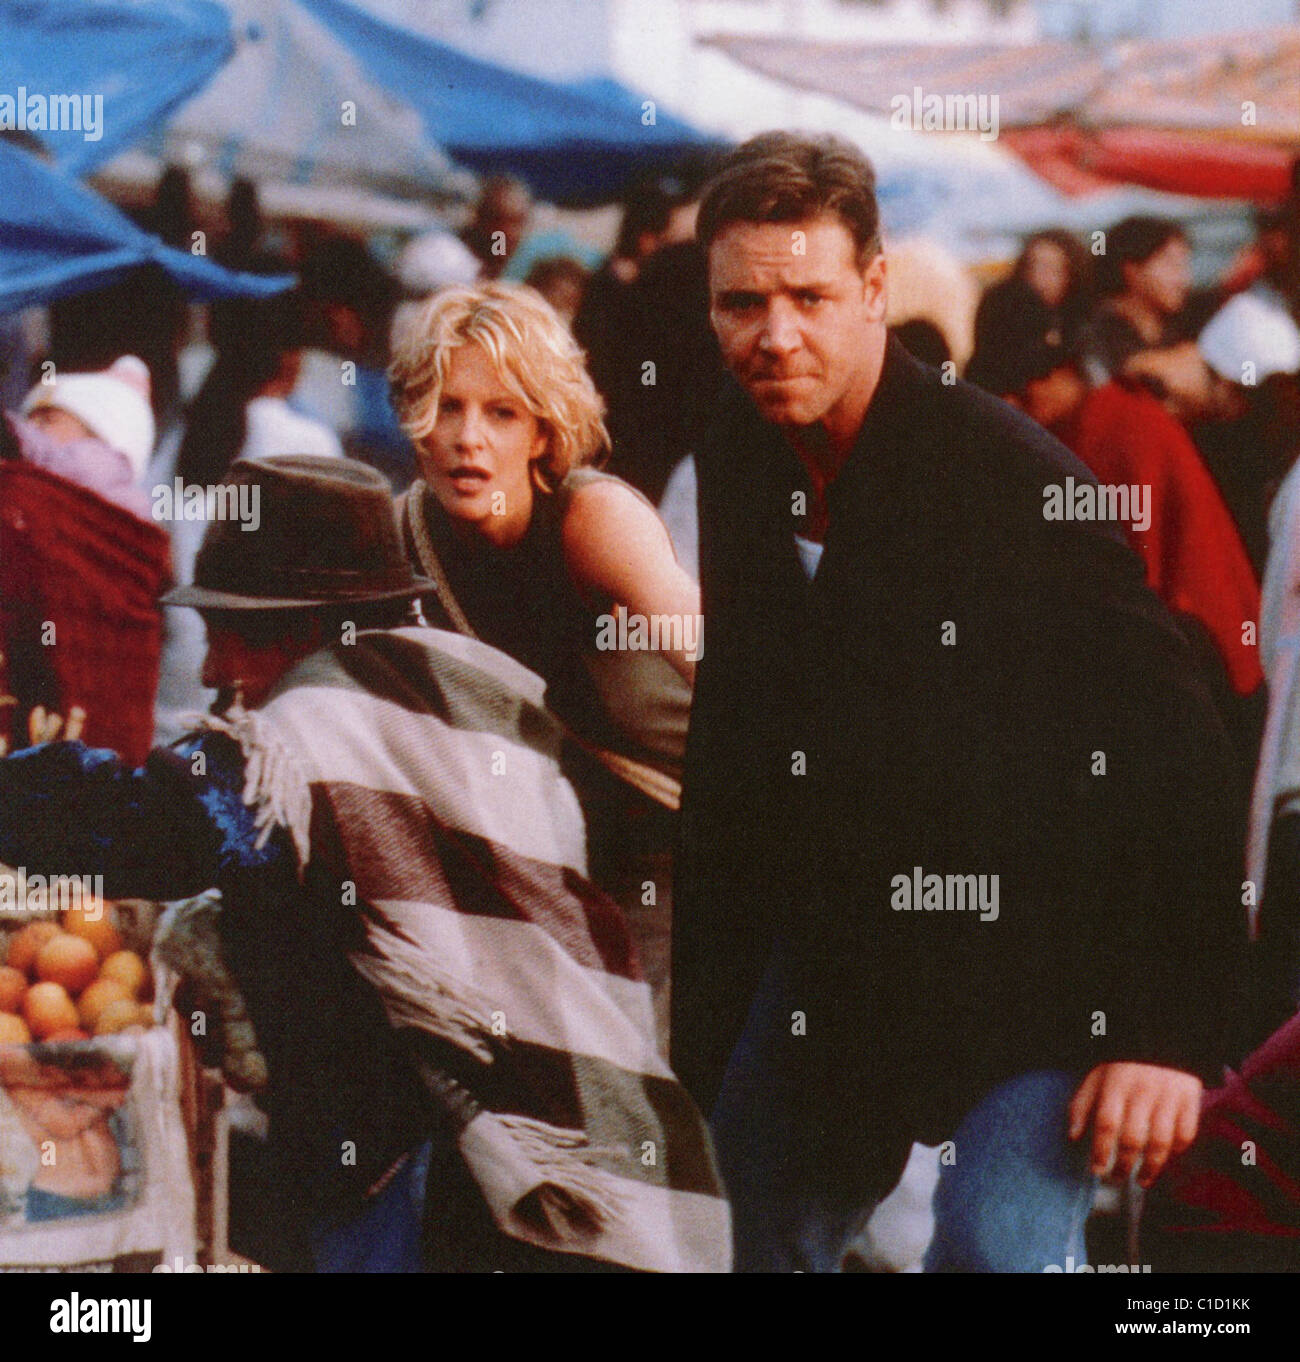 PROOF OF LIFE 2000 Bel Air/Castle Rock film with Russell Crowe and Meg Ryan - Stock Image